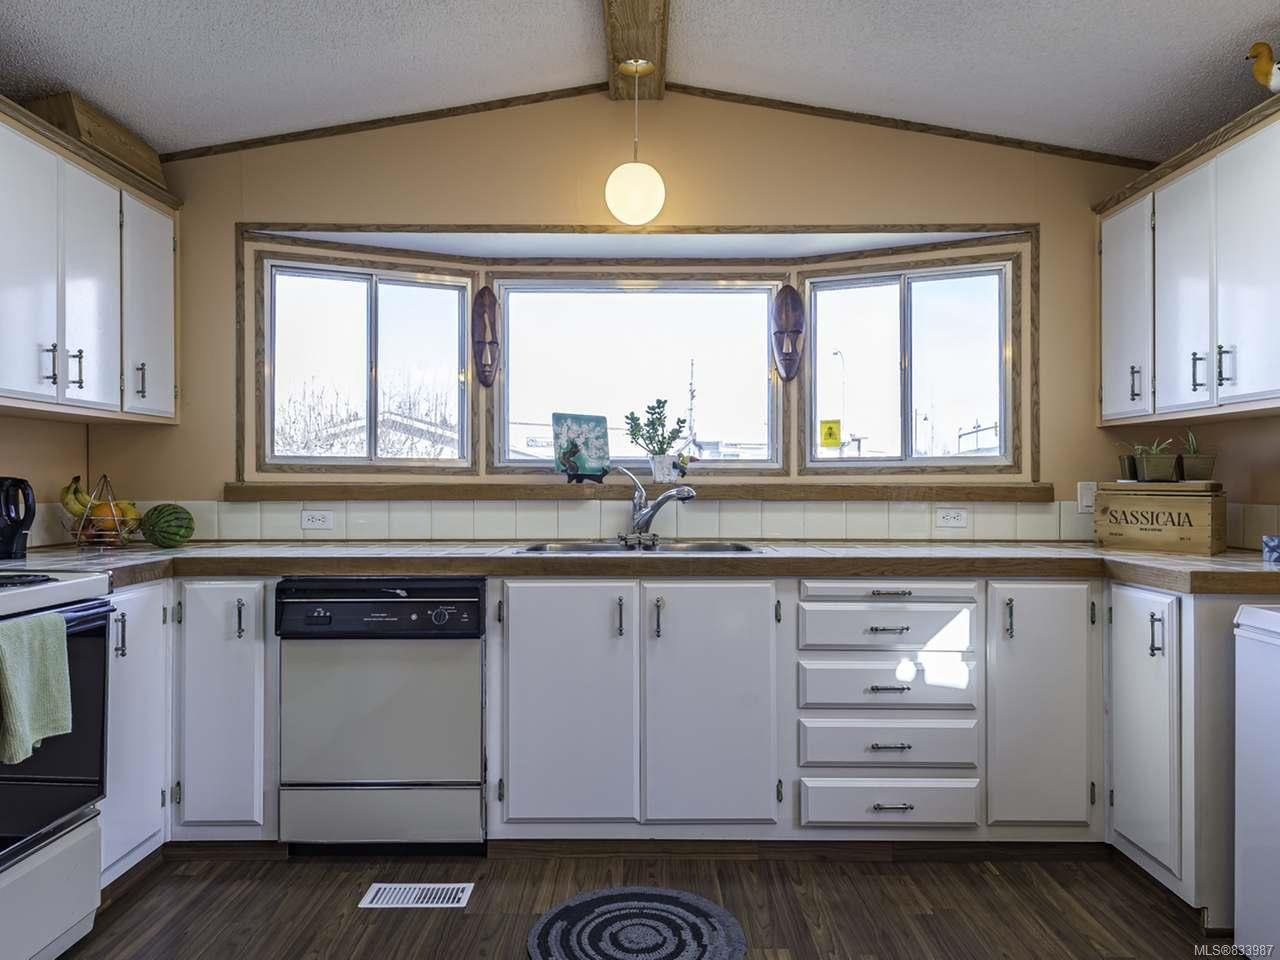 Photo 13: Photos: 64 390 Cowichan Ave in COURTENAY: CV Courtenay East Manufactured Home for sale (Comox Valley)  : MLS®# 833987